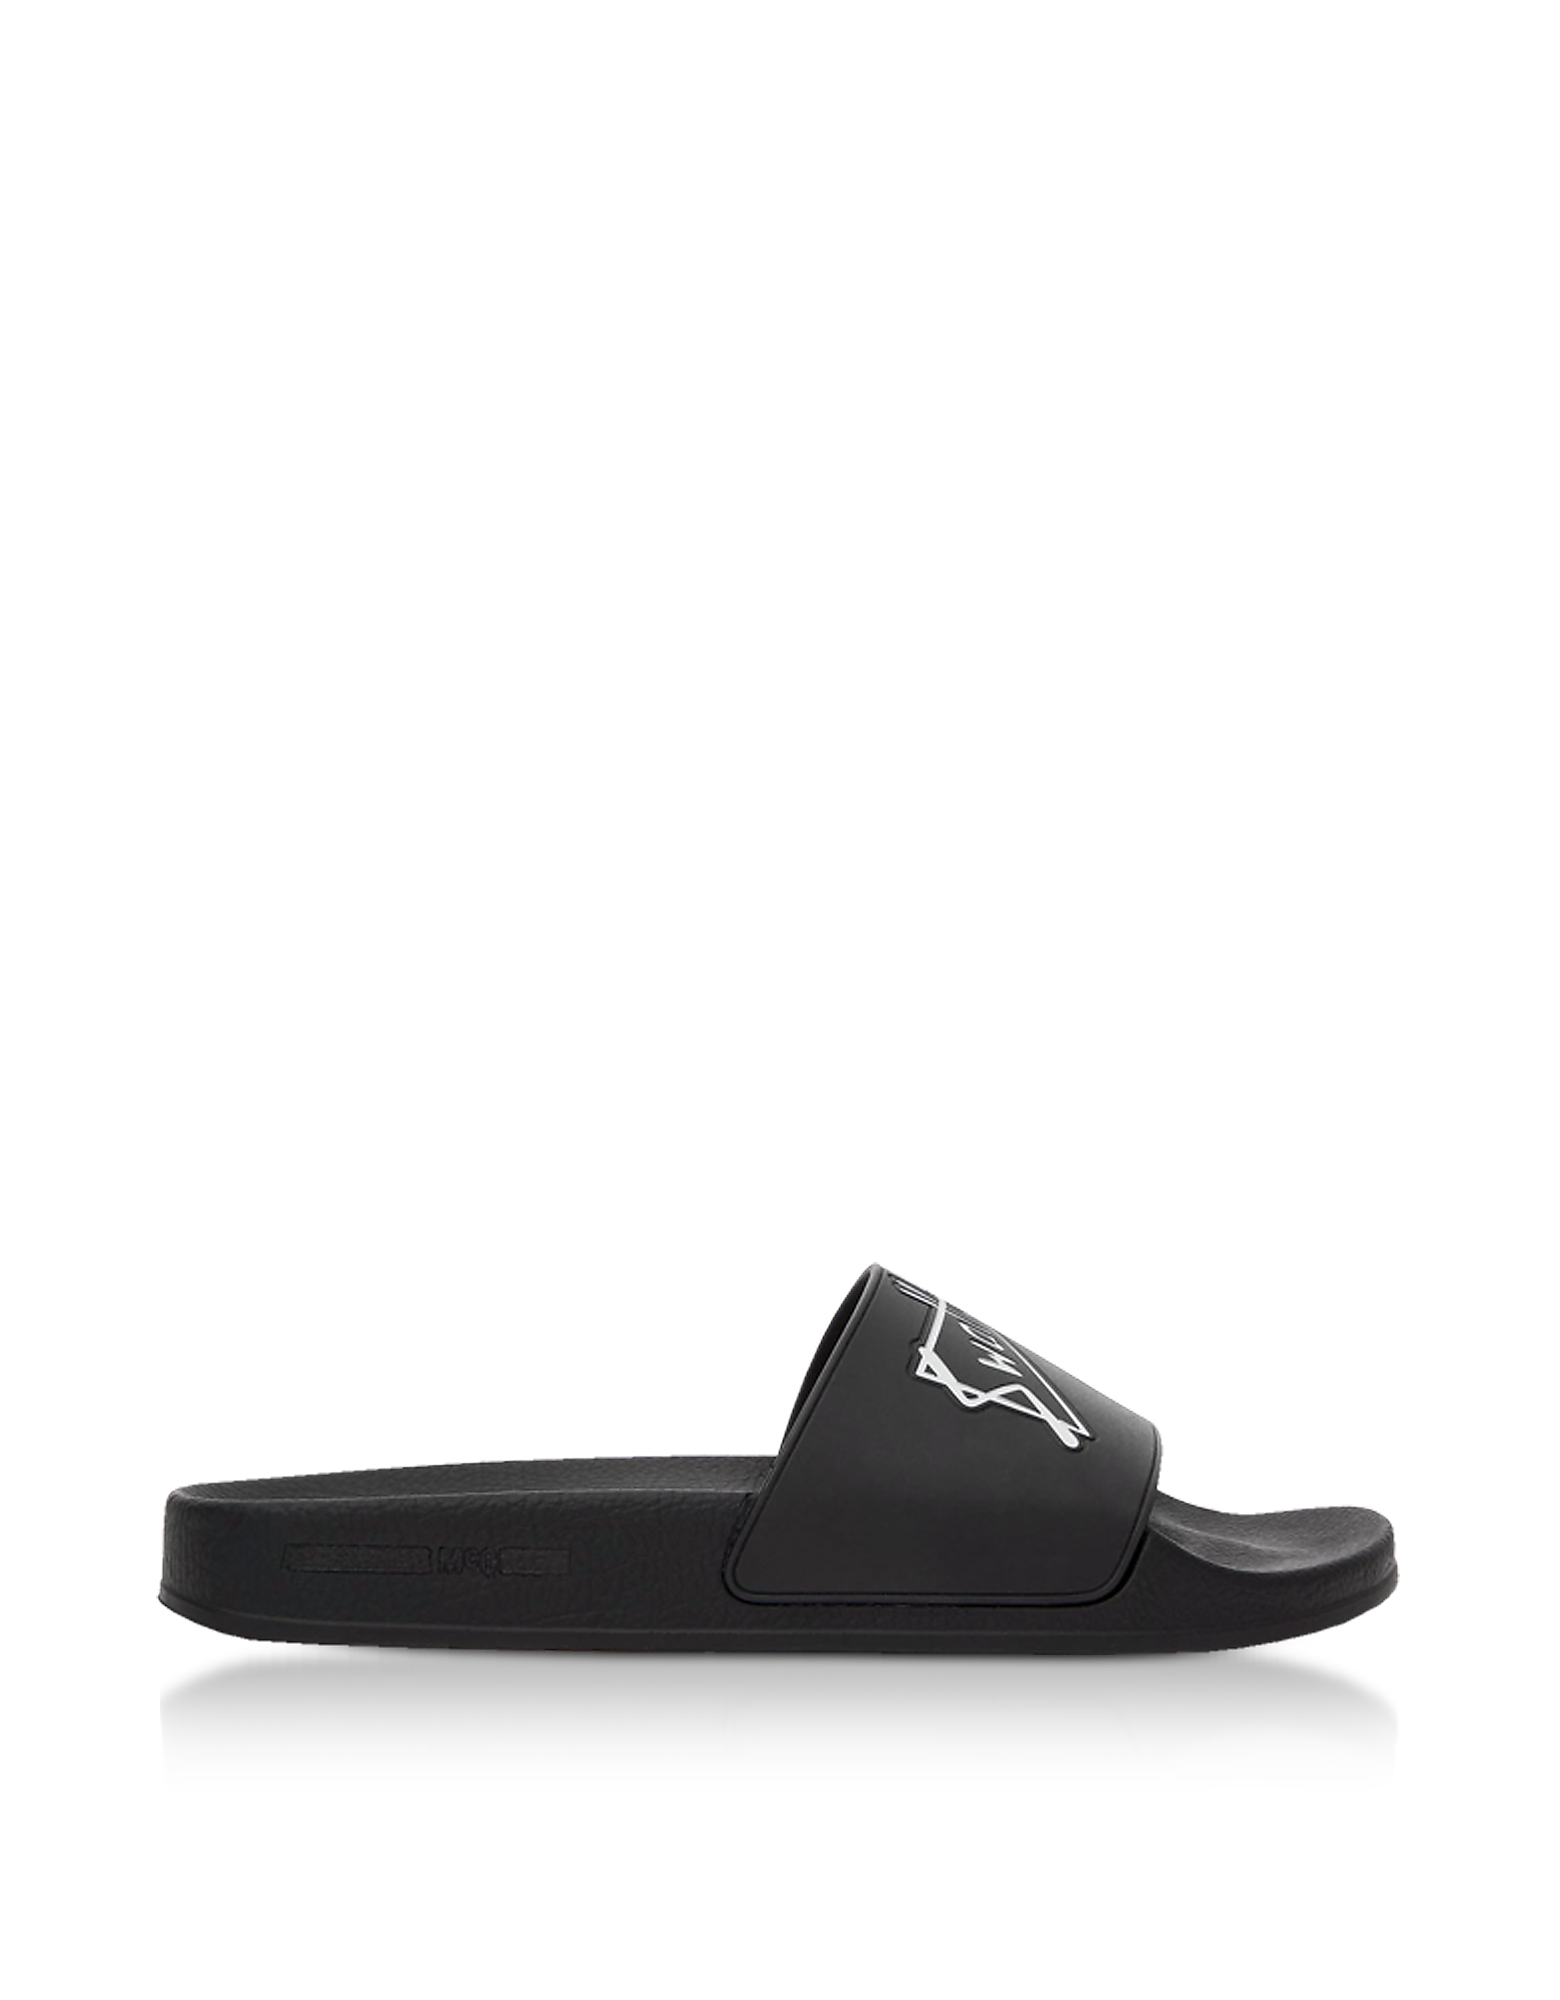 McQ Alexander McQueen Designer Shoes, Black Swallow Slide Sandals